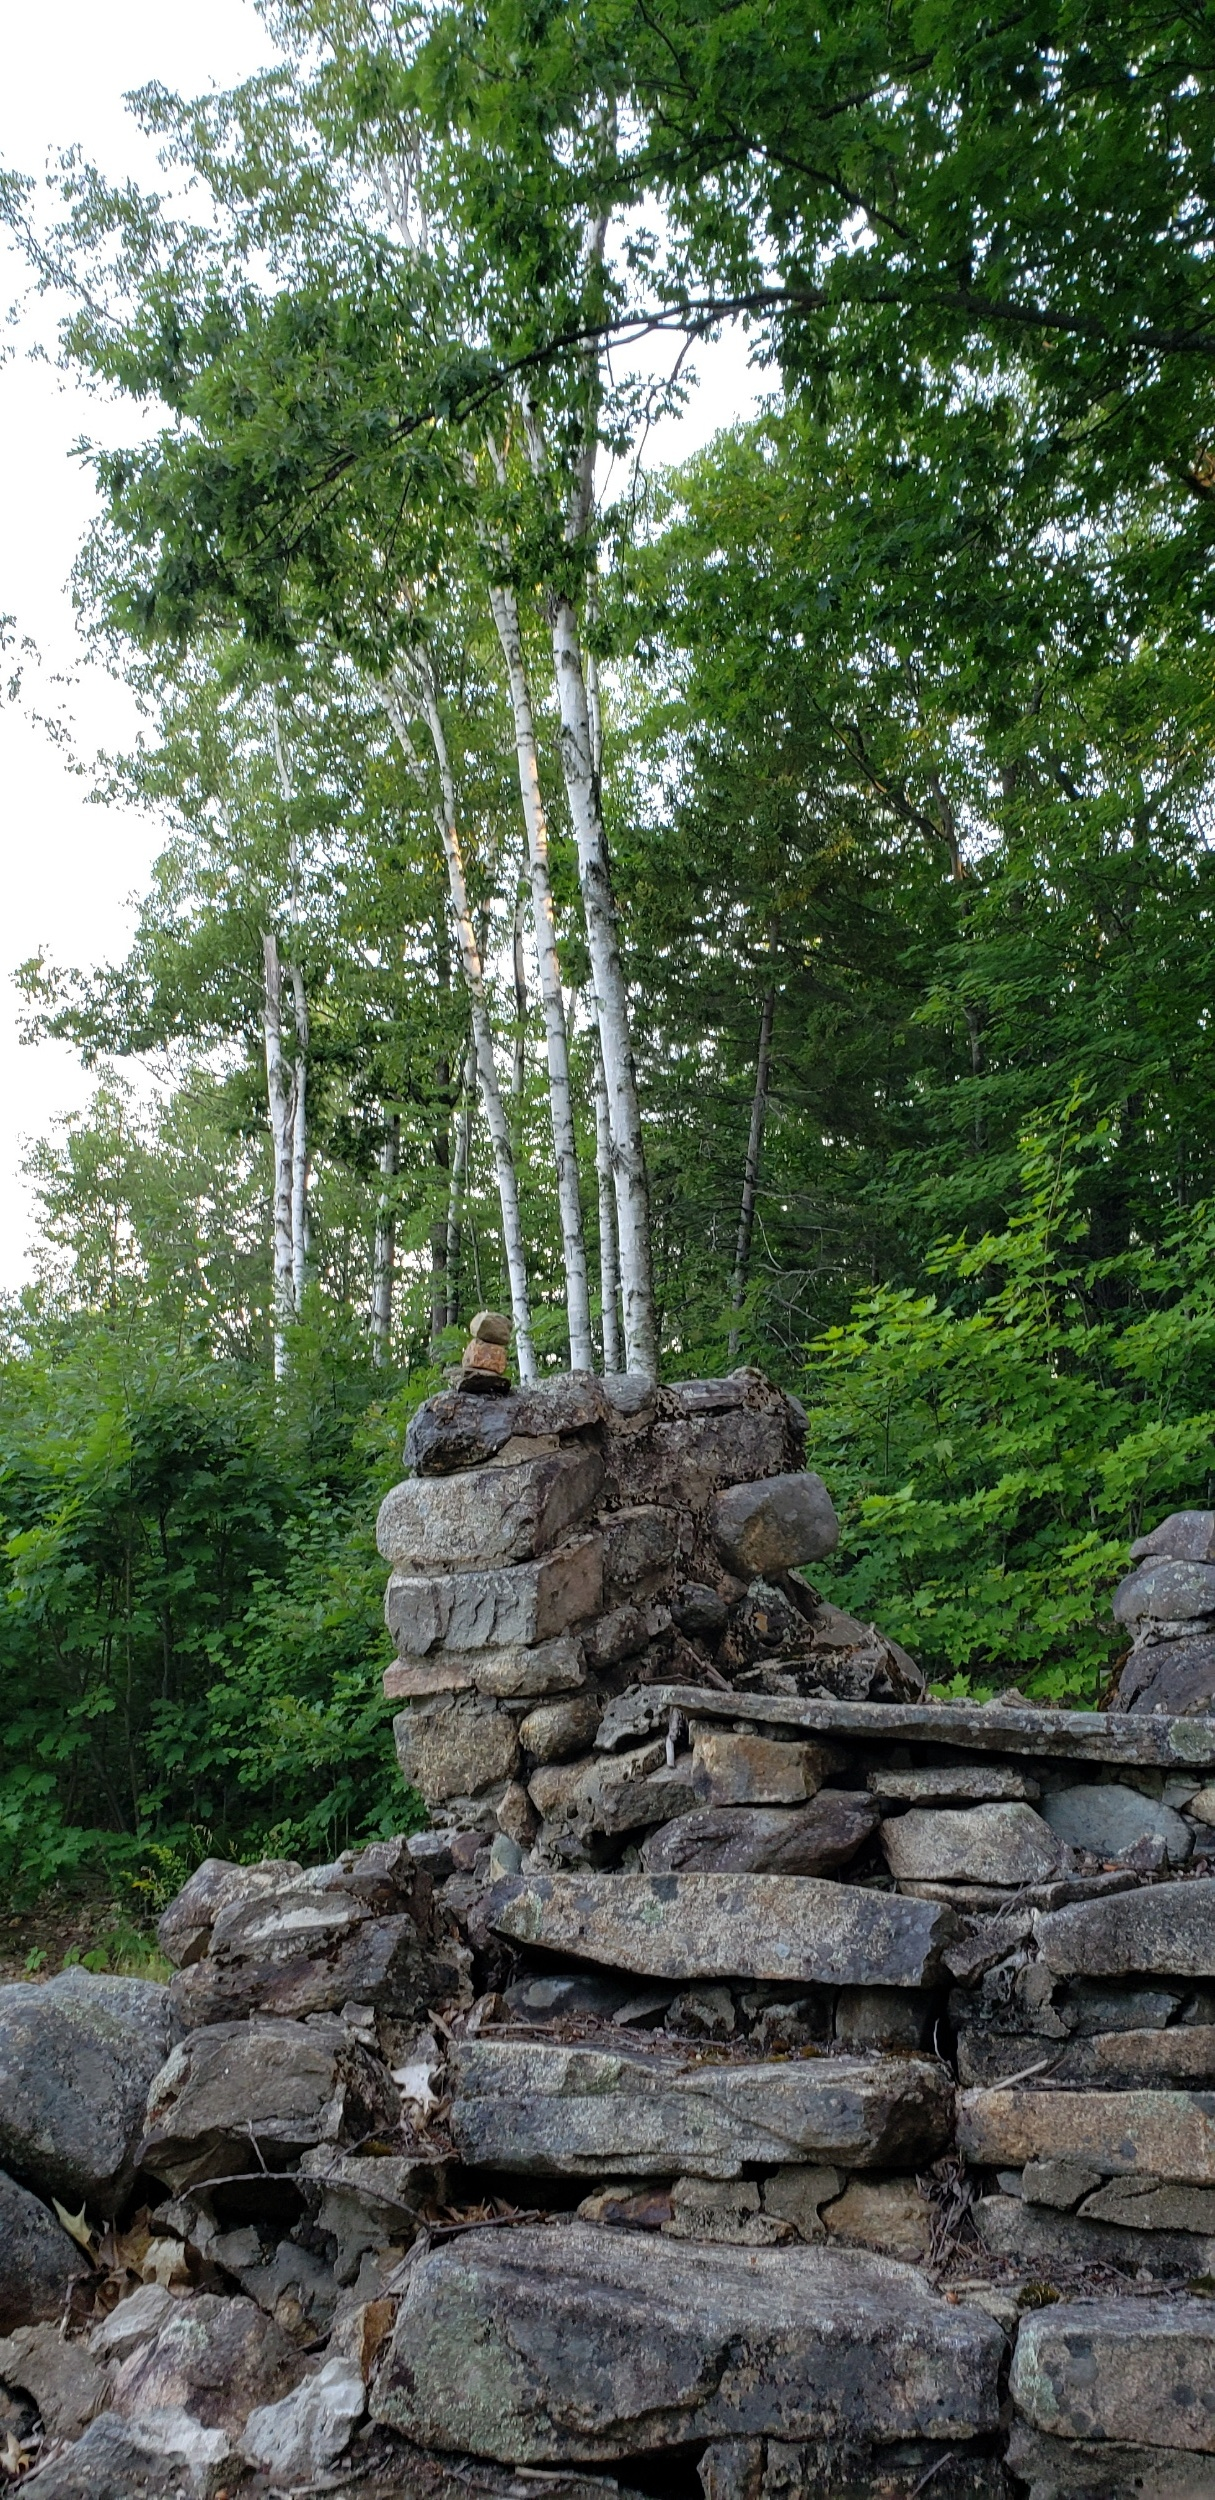 Forest with three tall white birch trees in the front of other green foliage. In the foreground of the picture are stones arranged into a rough staircase.